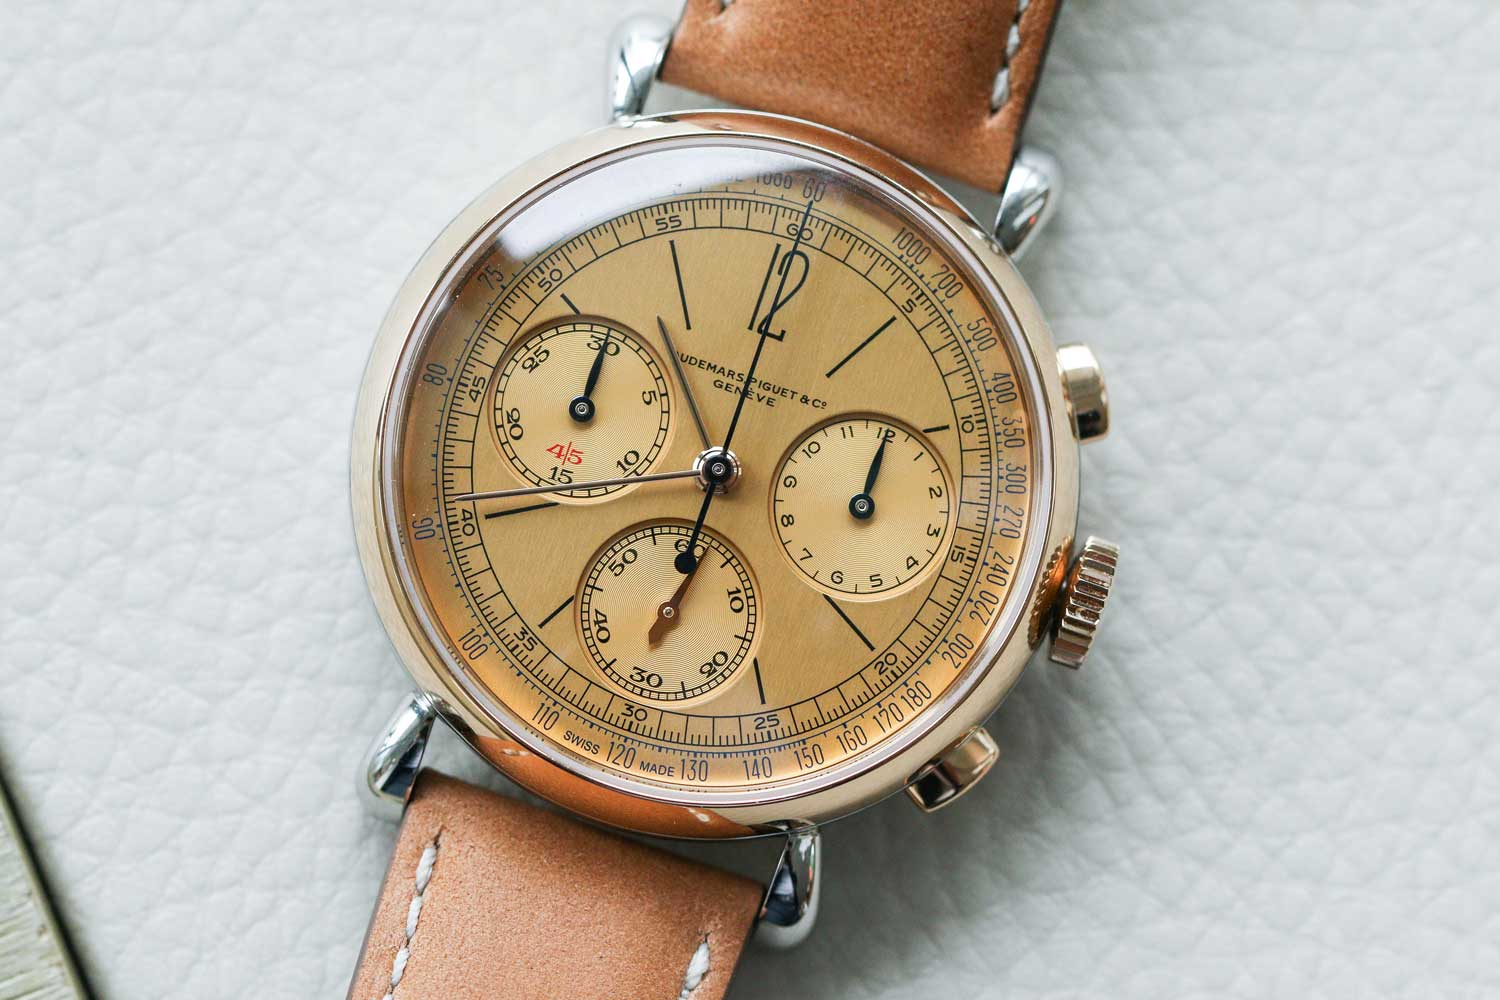 The [Re]master01 Selfwinding Flyback Chronograph (Image by Kevin Cureau)